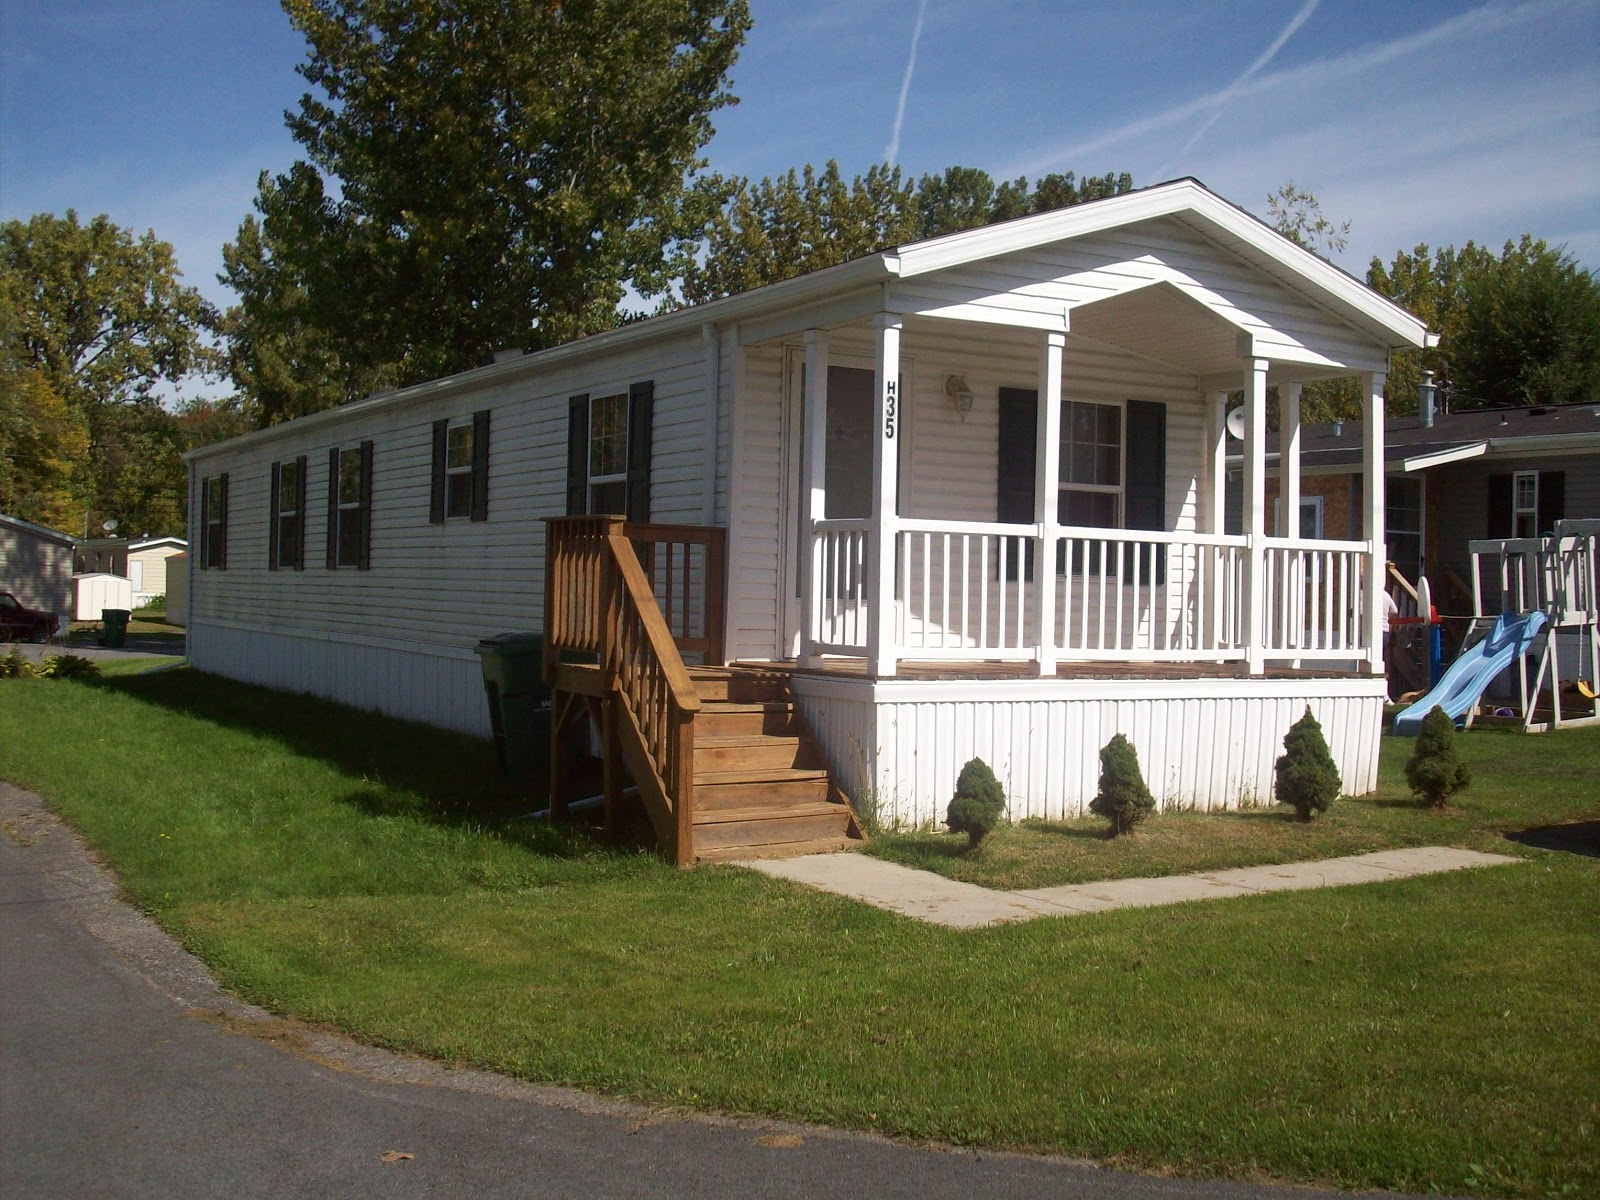 Clasic Colonial Homes Outside The Rat Race Is It Worth Buying A Manufactured Home